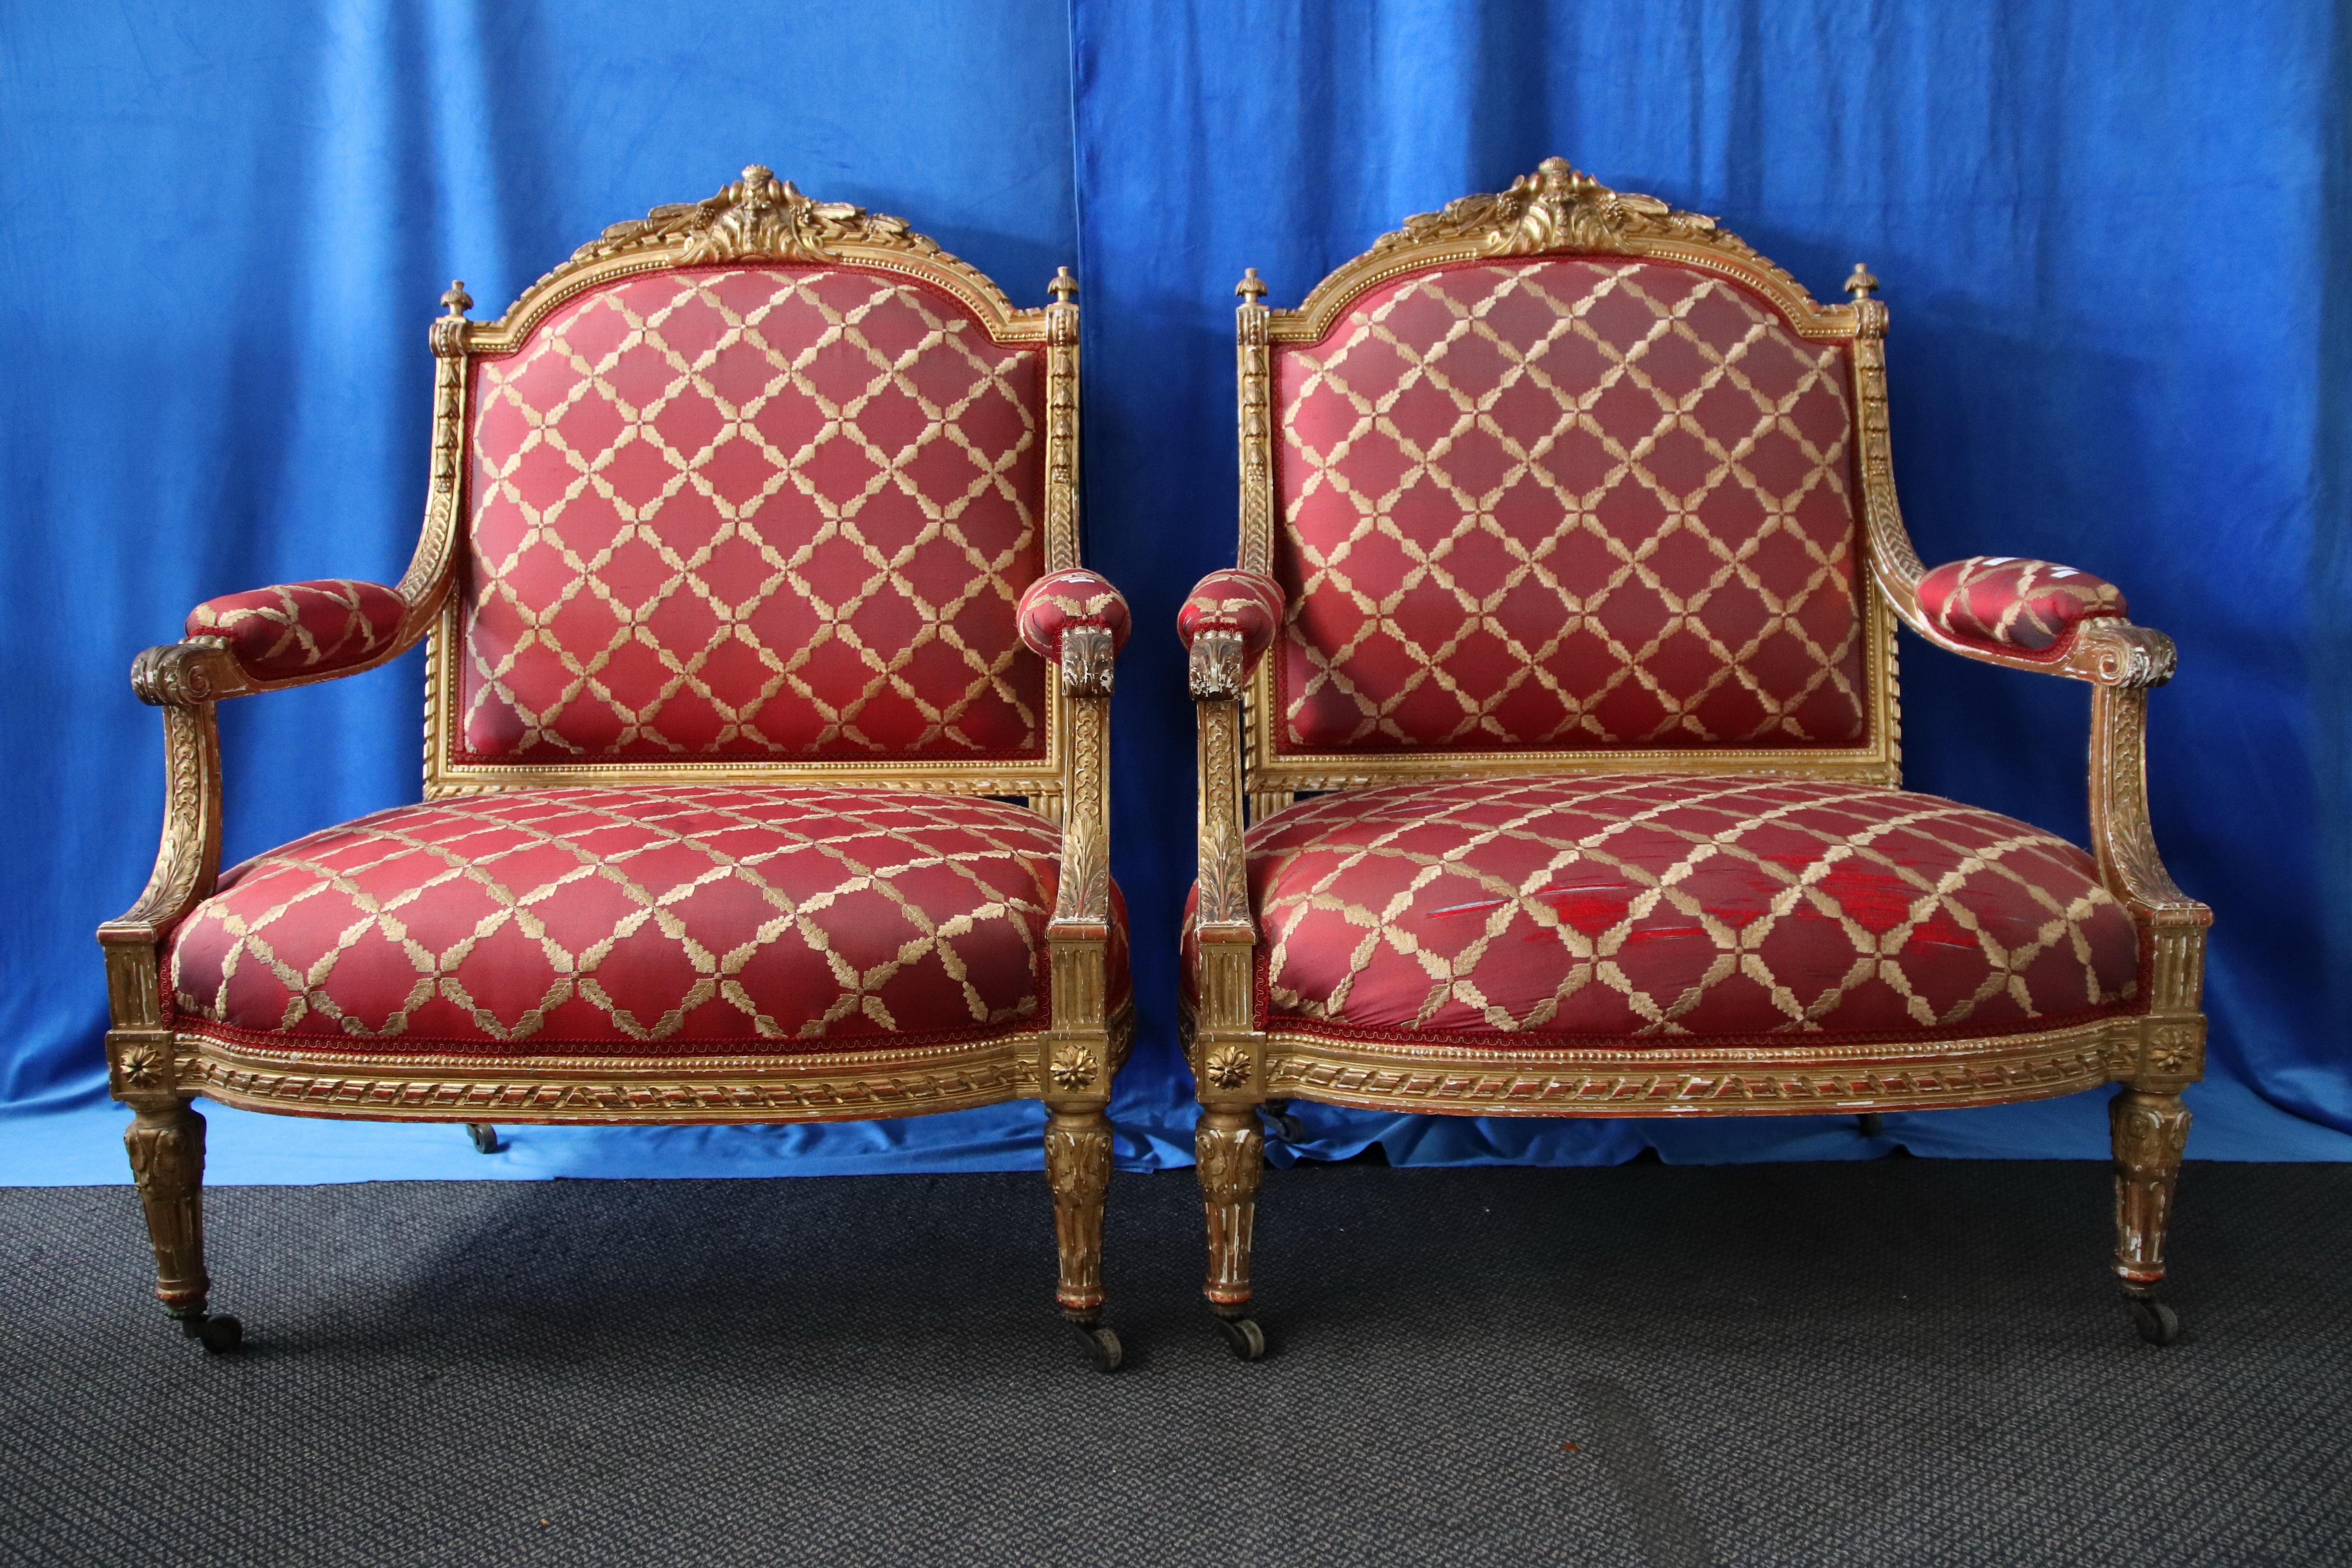 2 FRENCH GOLD GILT OVERSIZED ARM CHAIRS PROVENANCE MOSSGREEN W815MM H1070MM D590MM